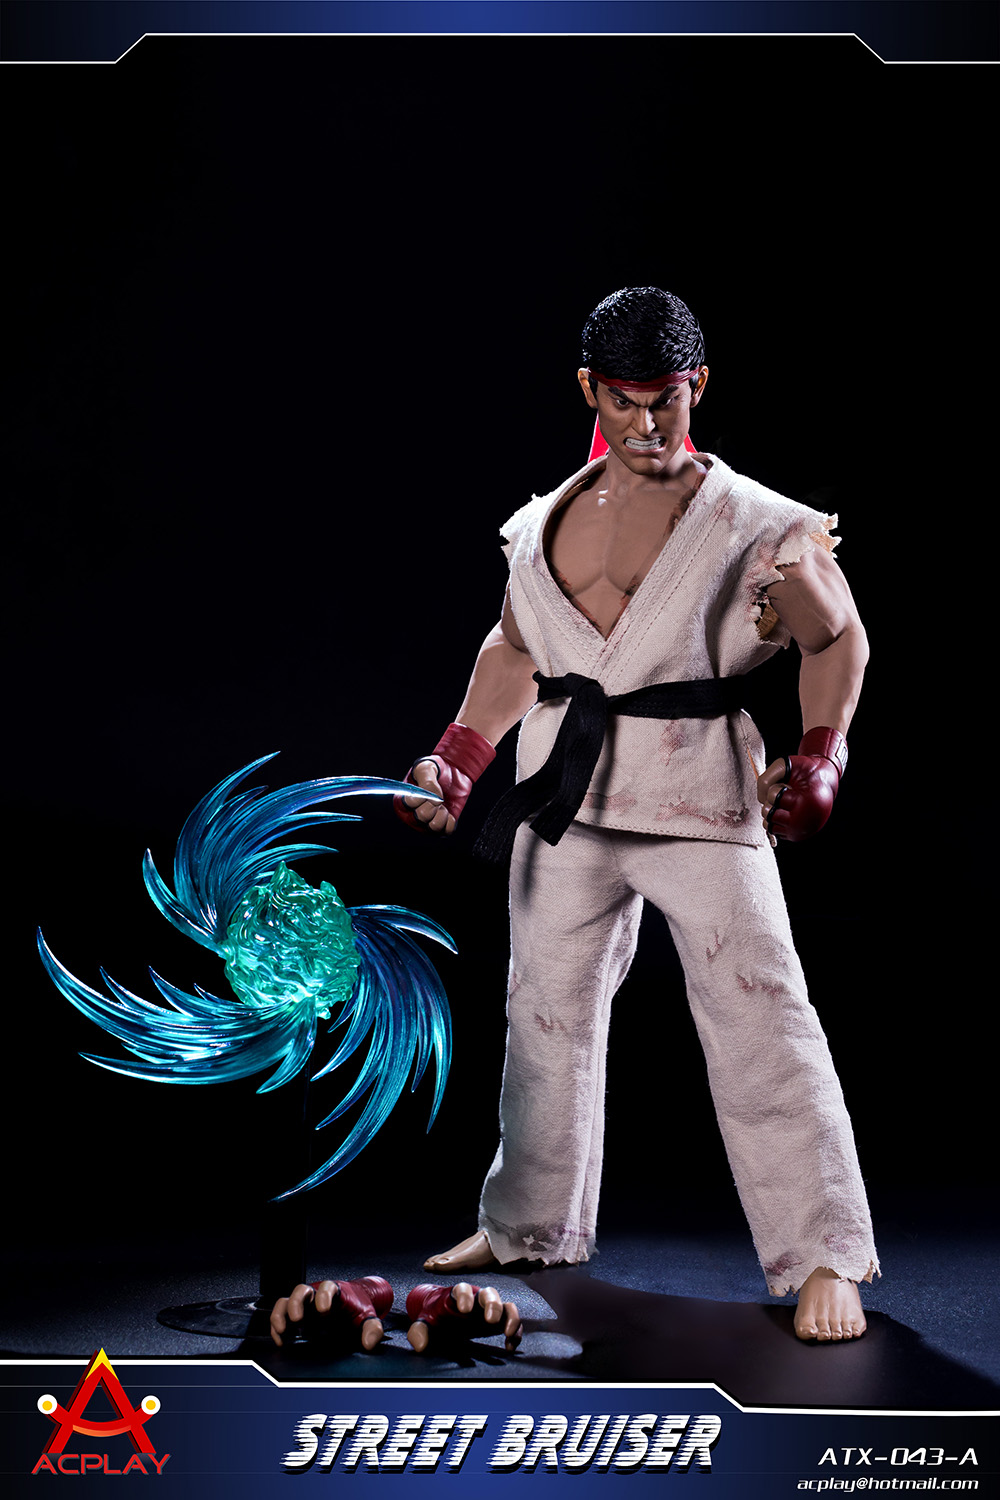 NEW PRODUCT: ACPLAY new products: 1/6 ATX043 Street Fighters practice martial arts A/B suit 11353210